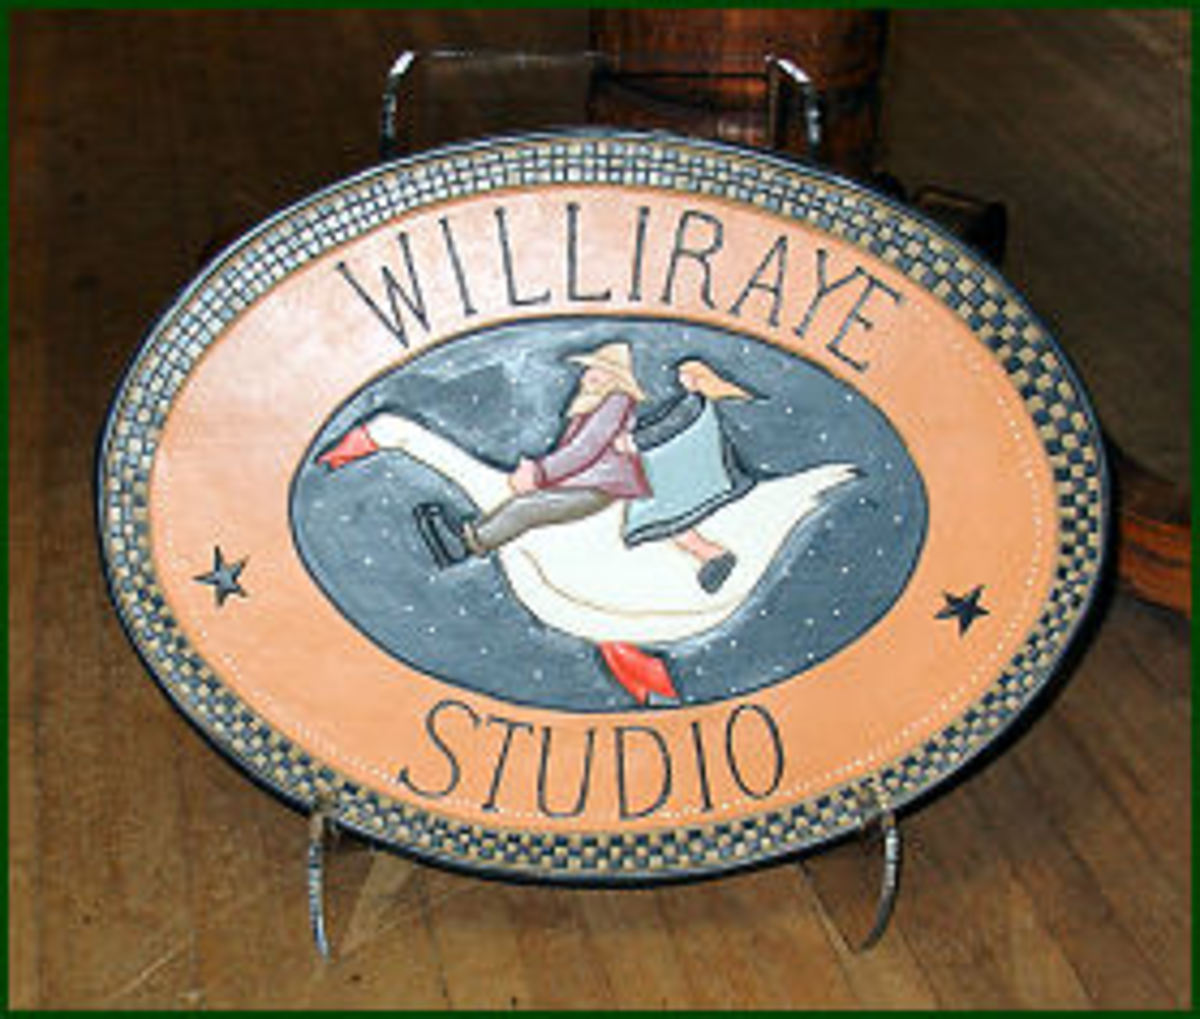 A combination of warmth, tradition, happiness, and memories are what the collectibles of Williraye Studios is all about.